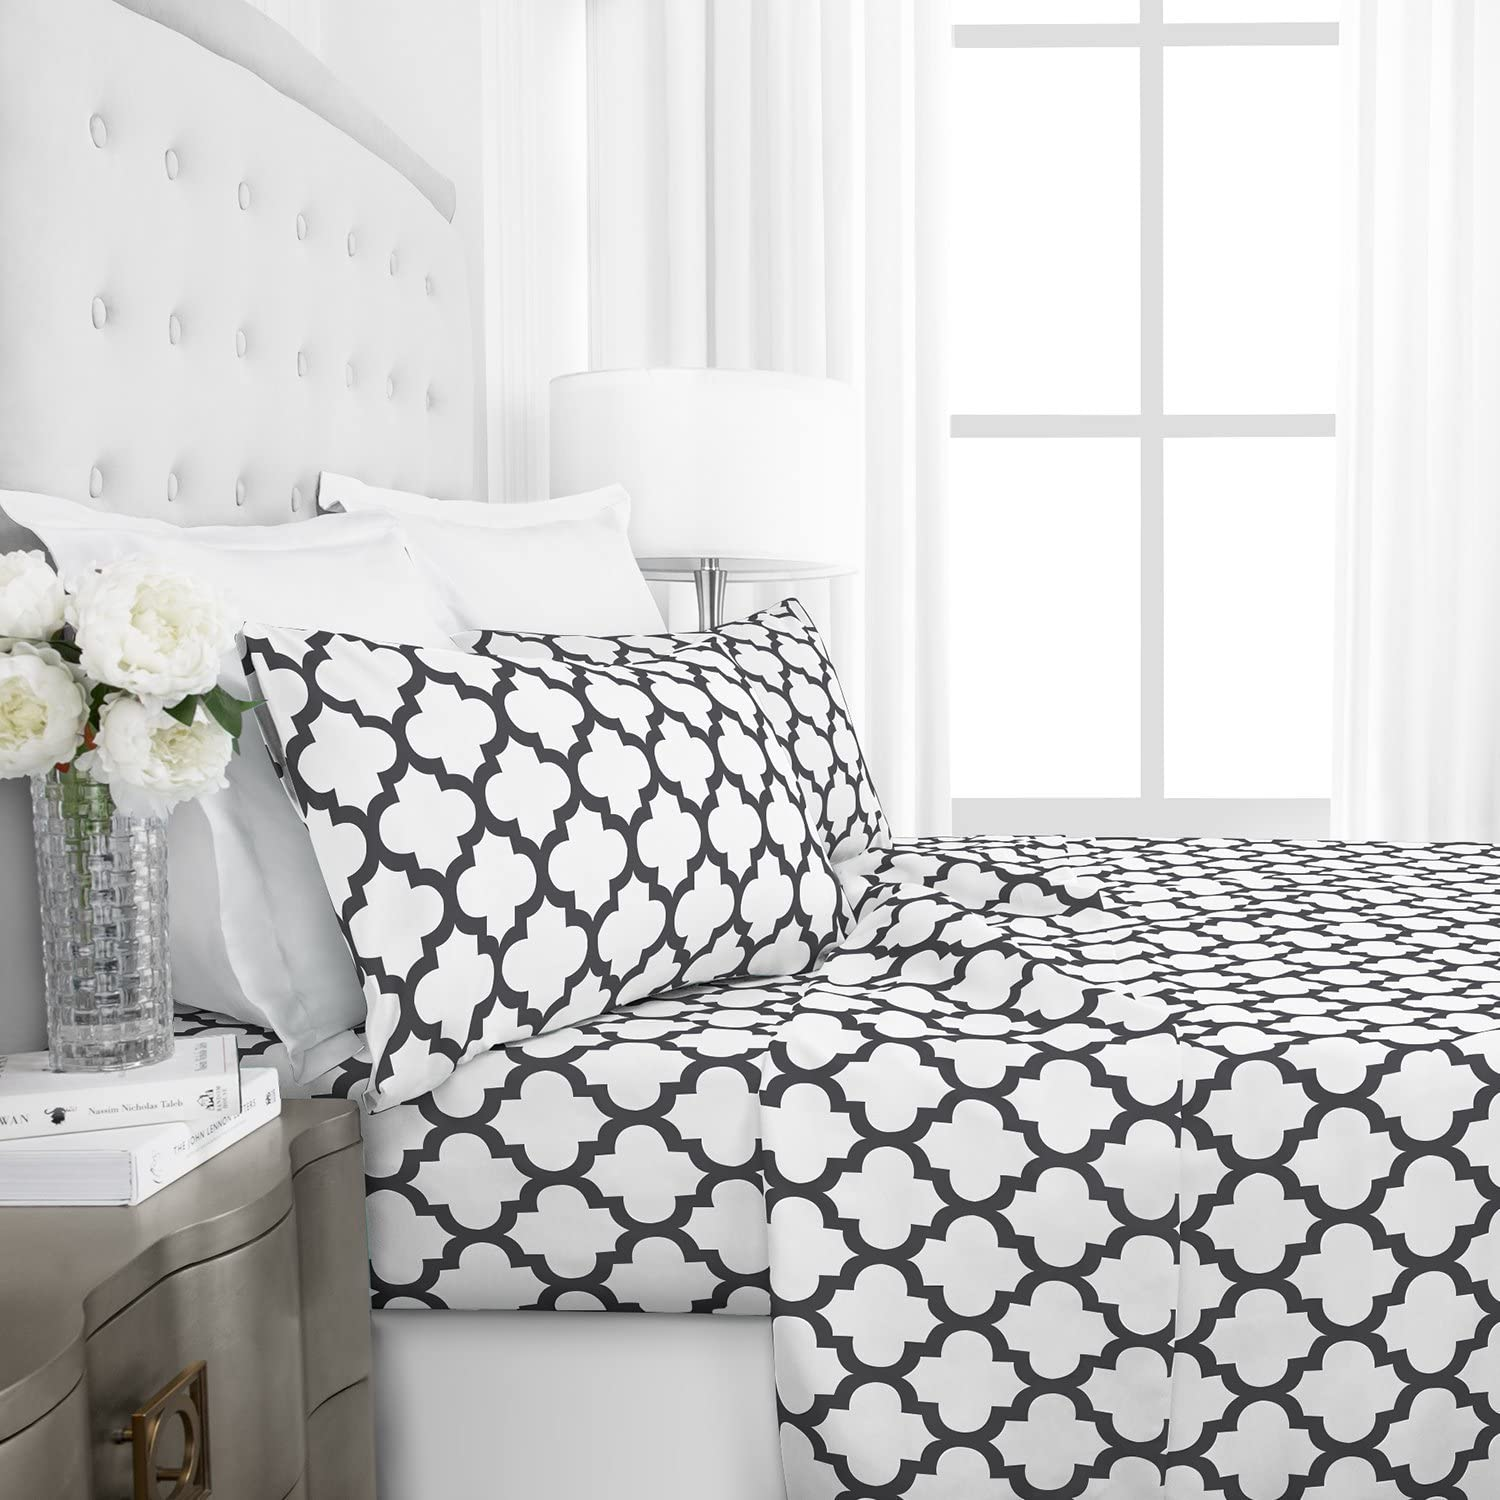 Italian Luxury 1800 Series Hotel Collection Quatrefoil Pattern Bed Sheet Set - Deep Pockets, Wrinkle and Fade Resistant, Hypoallergenic Printed Sheet and Pillow Case Set - Queen - White